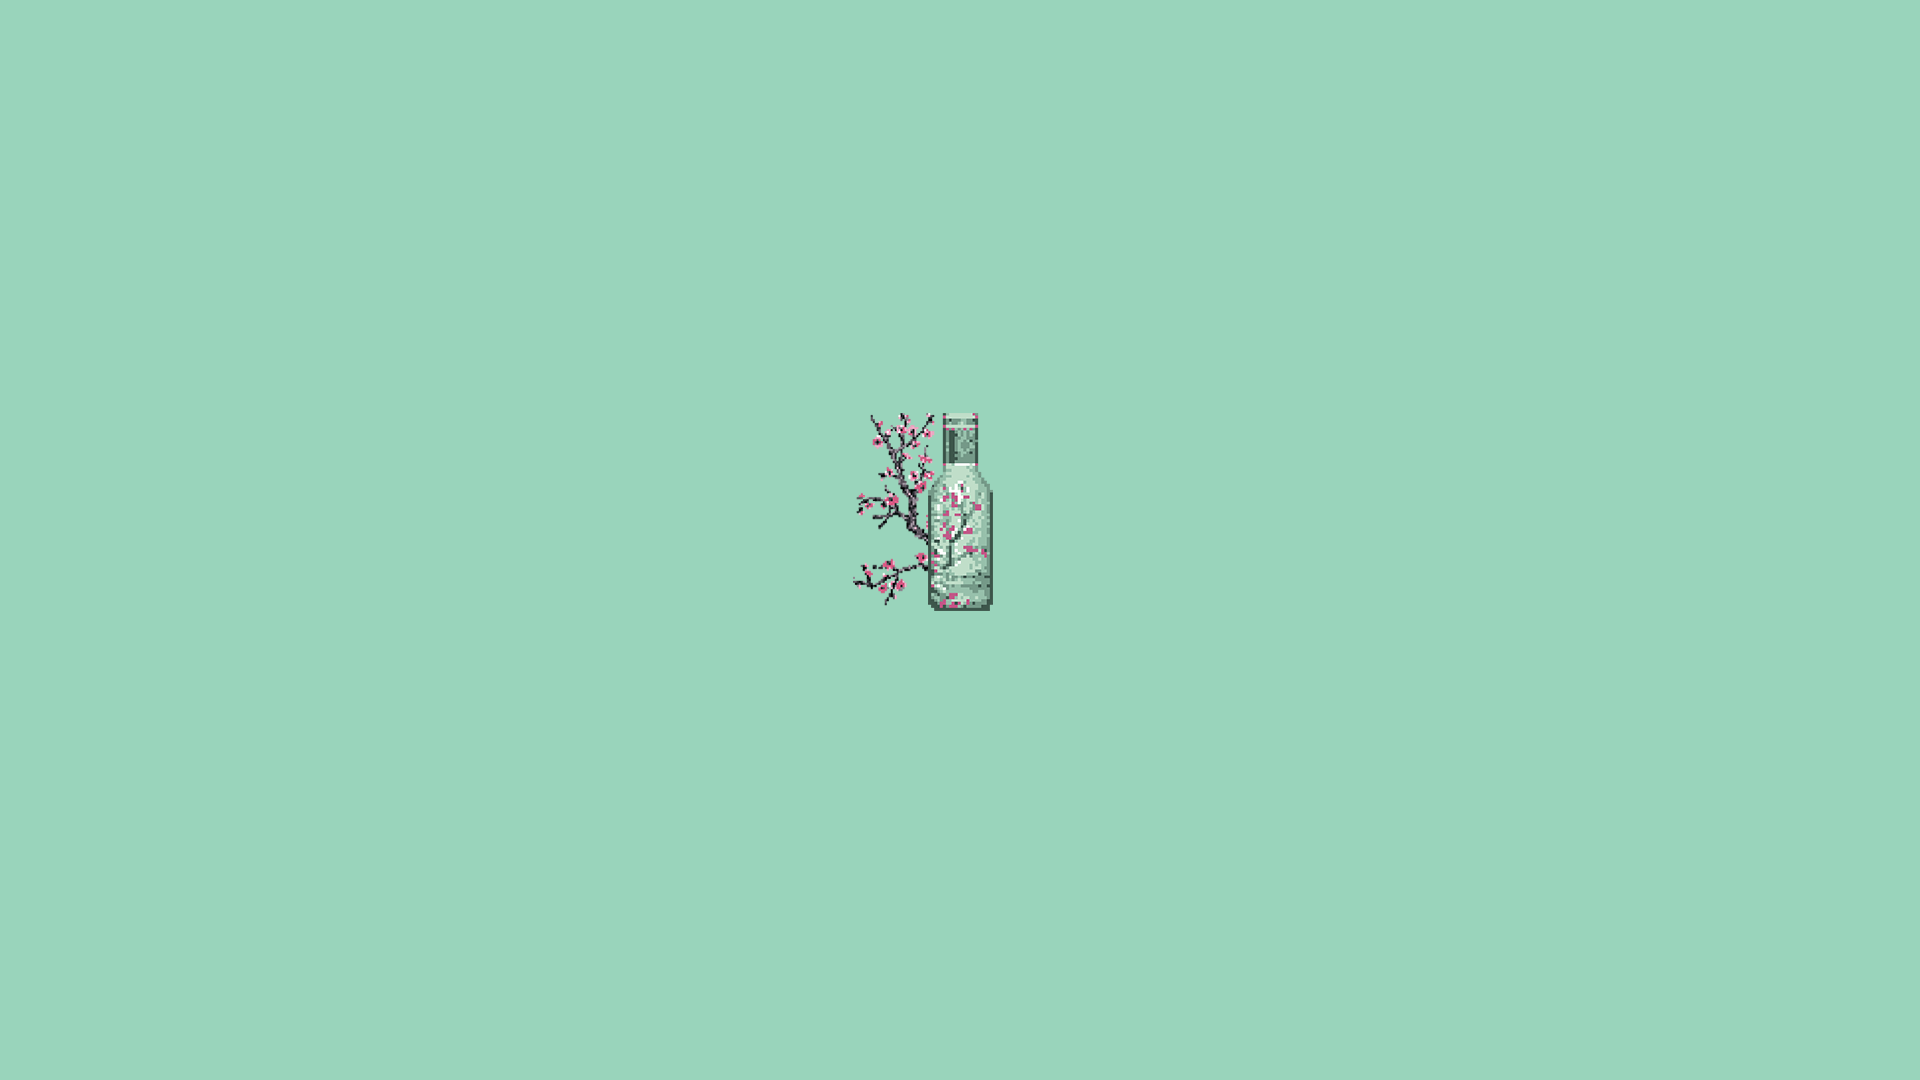 Teal Aesthetic Laptop Wallpapers   Top Teal Aesthetic Laptop 1920x1080